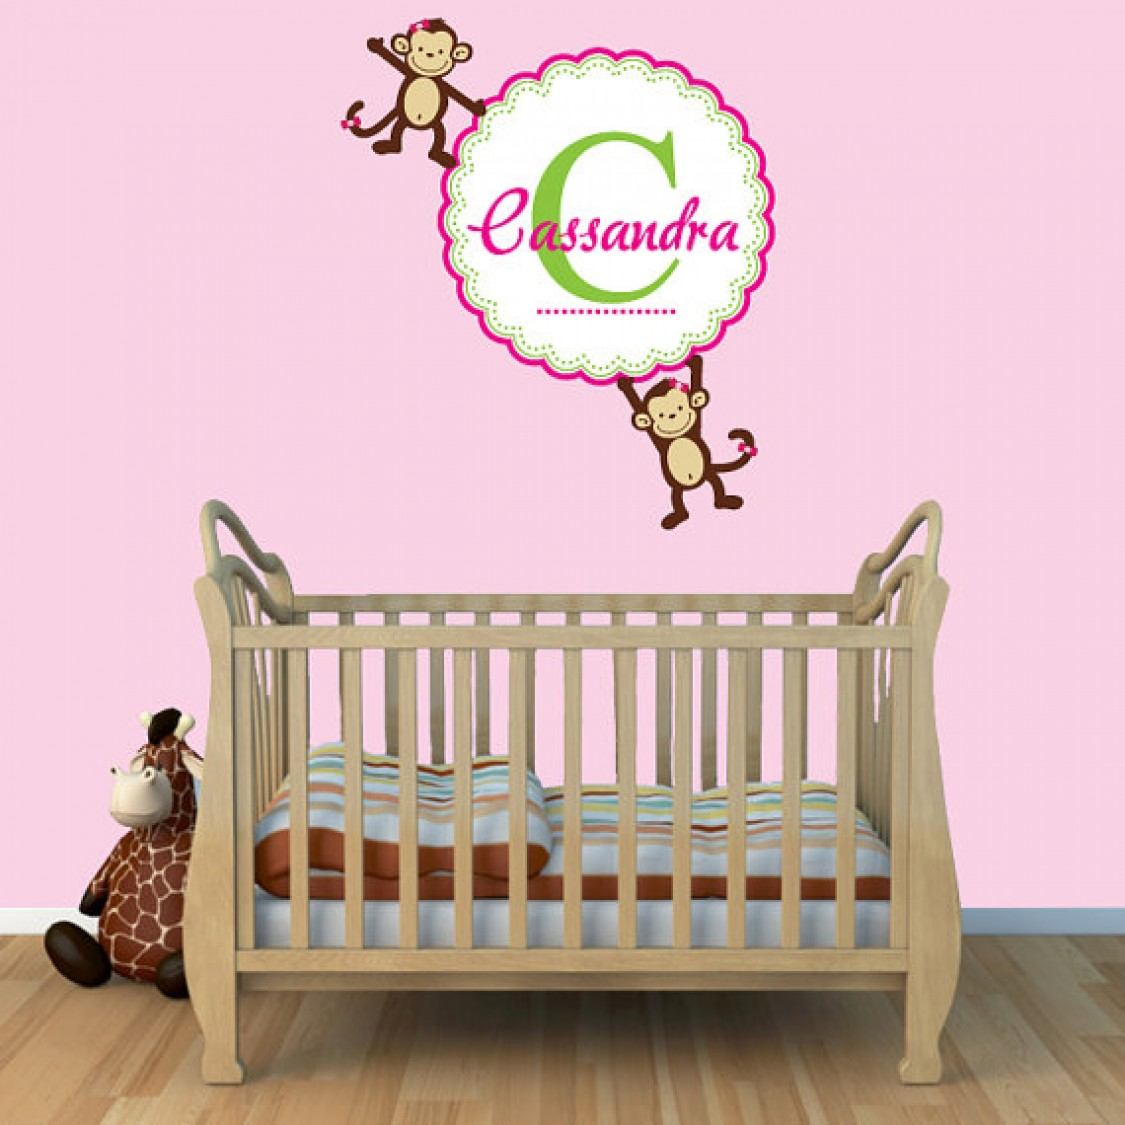 Custom Name Wall Decals For Nursery With Monkey Wall Decals For Nursery For Girls Rooms